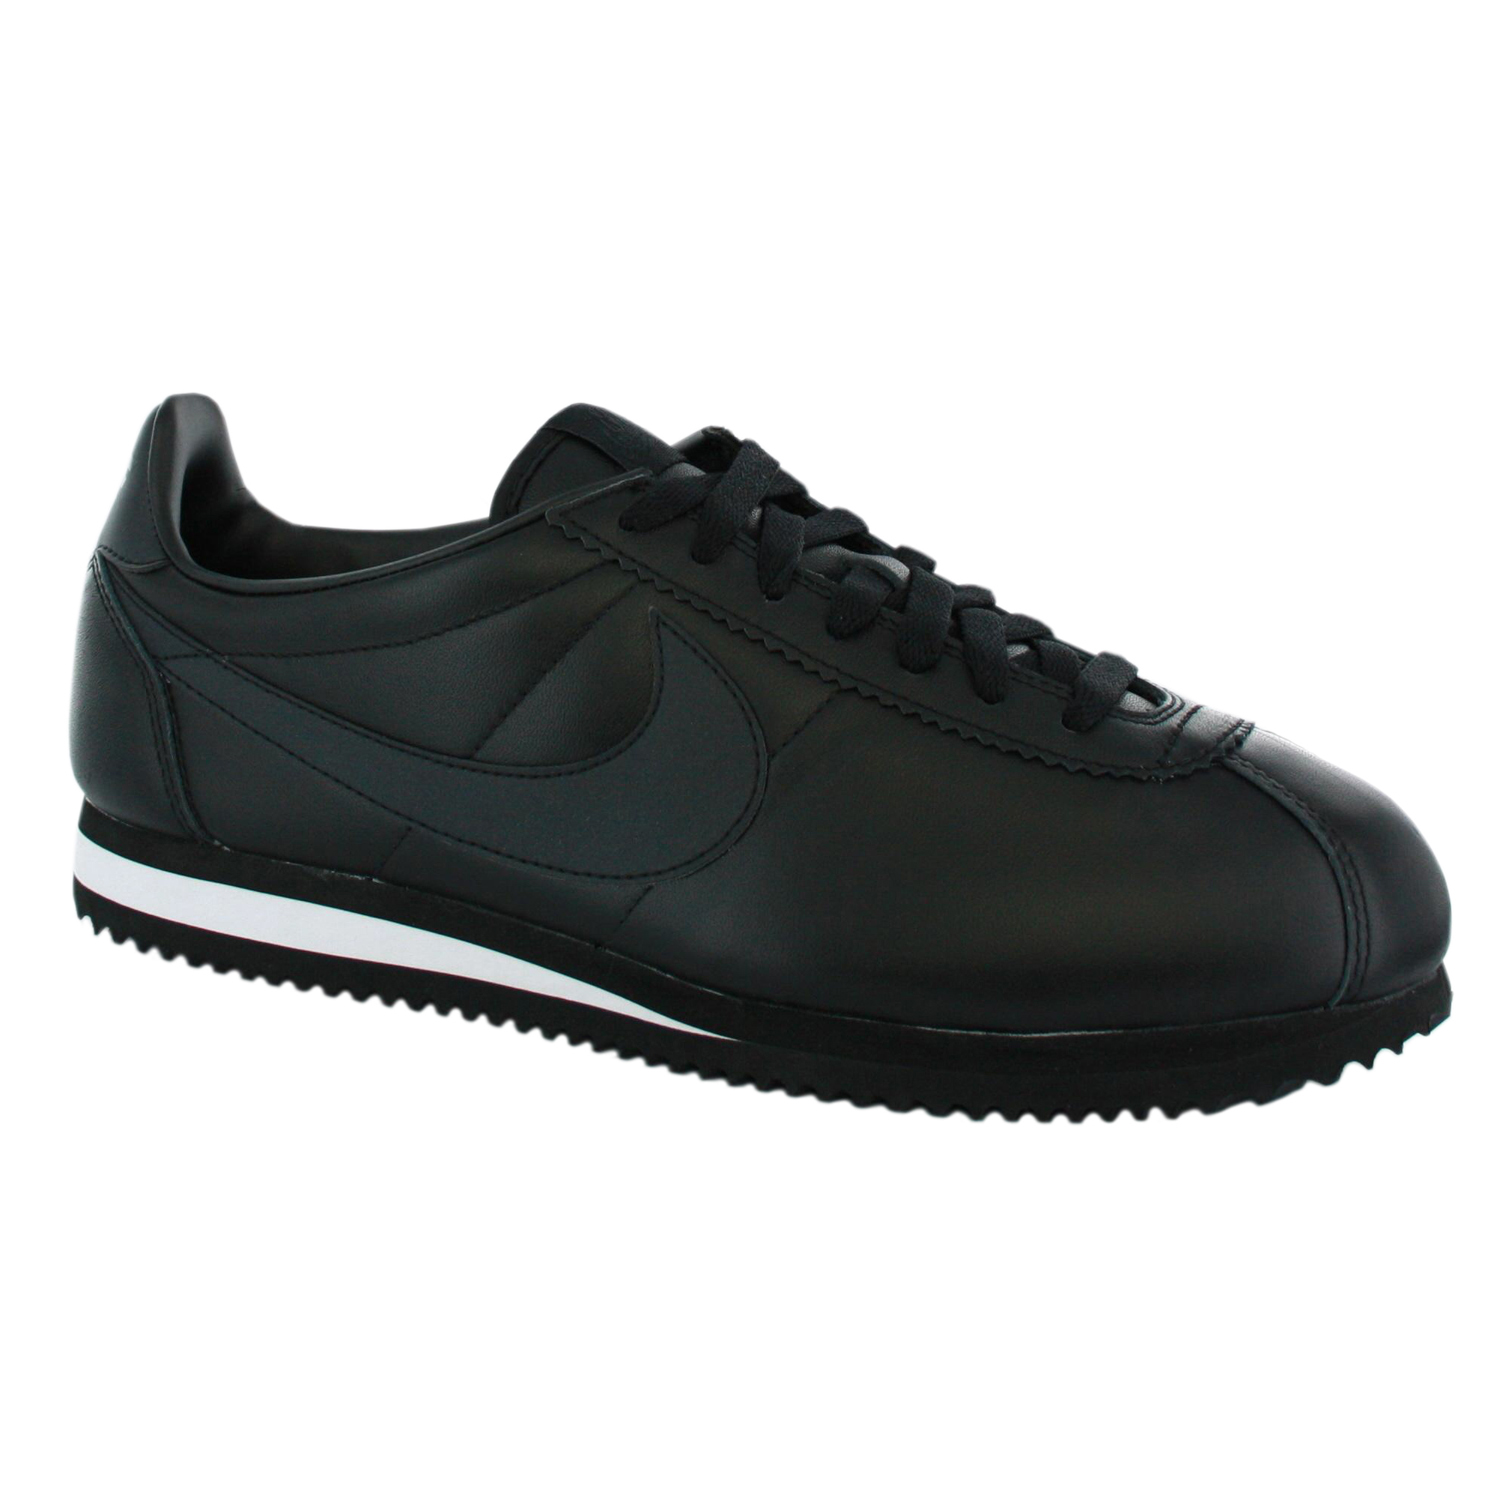 nike cortez leather mens new trainer shoes black